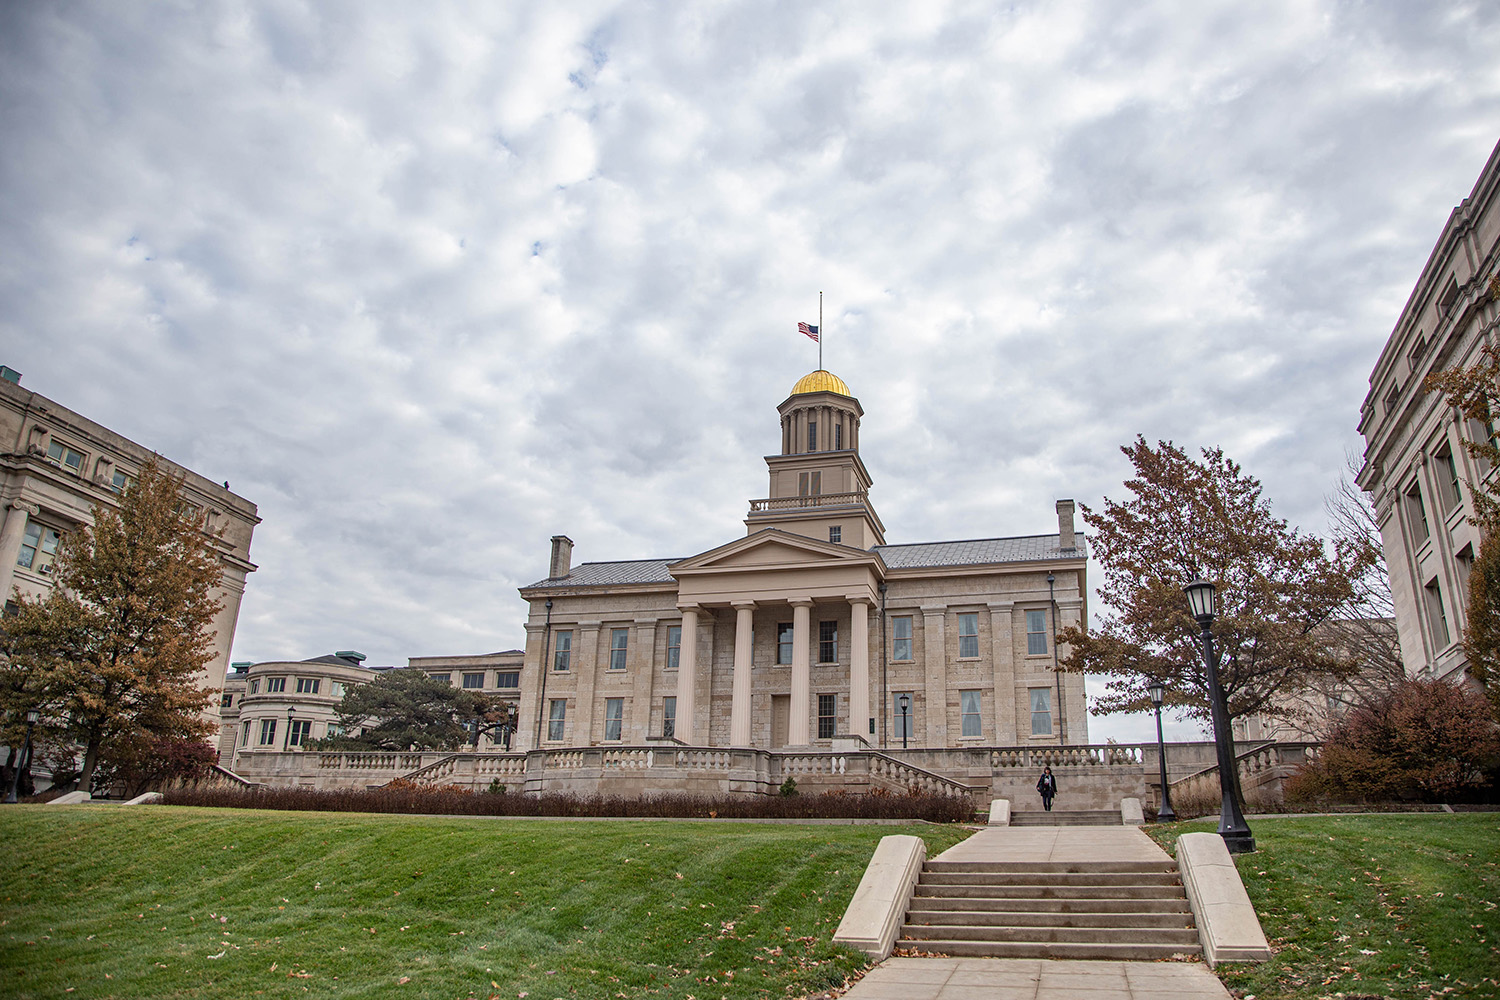 The Old Capitol building is seen on Wednesday, Nov. 20, 2019. The building was completed in 1842 and was home to the last four territorial legislatures first six Iowa General Assemblies until the state capital moved to Des Moines in 1857.